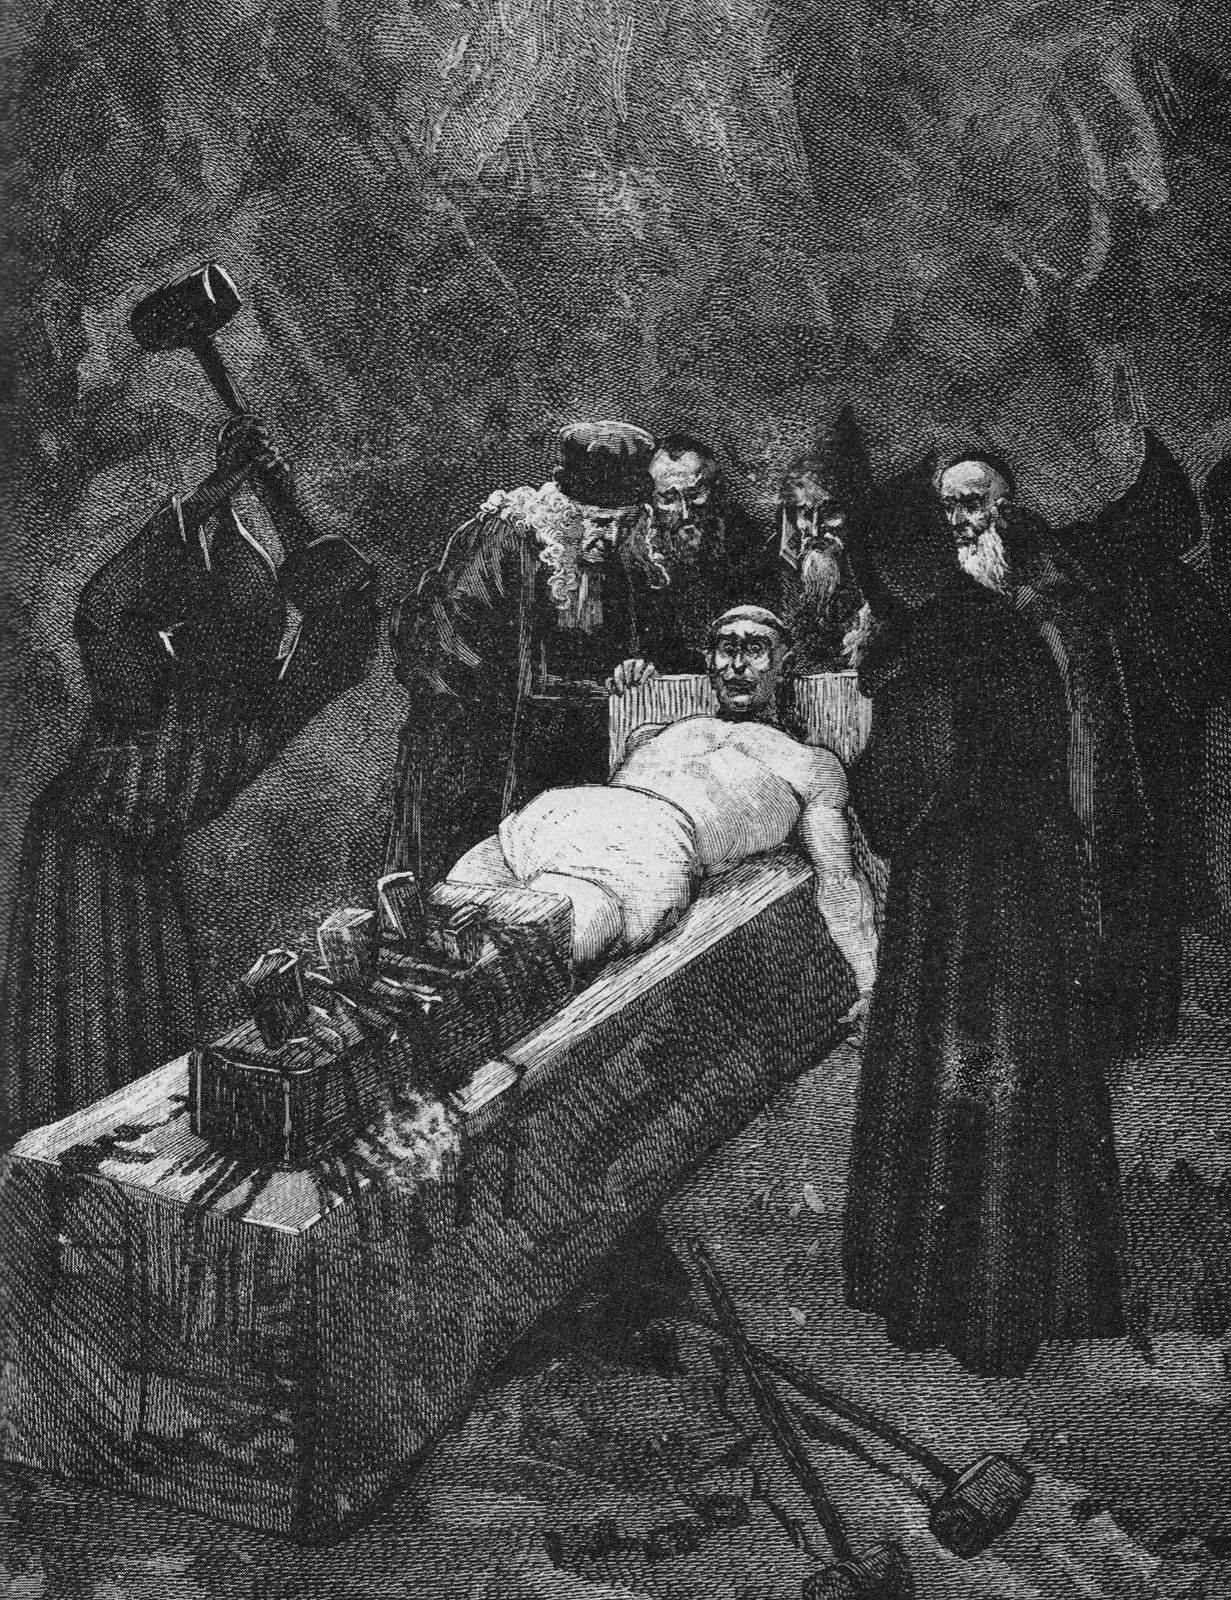 Witch torture fetish